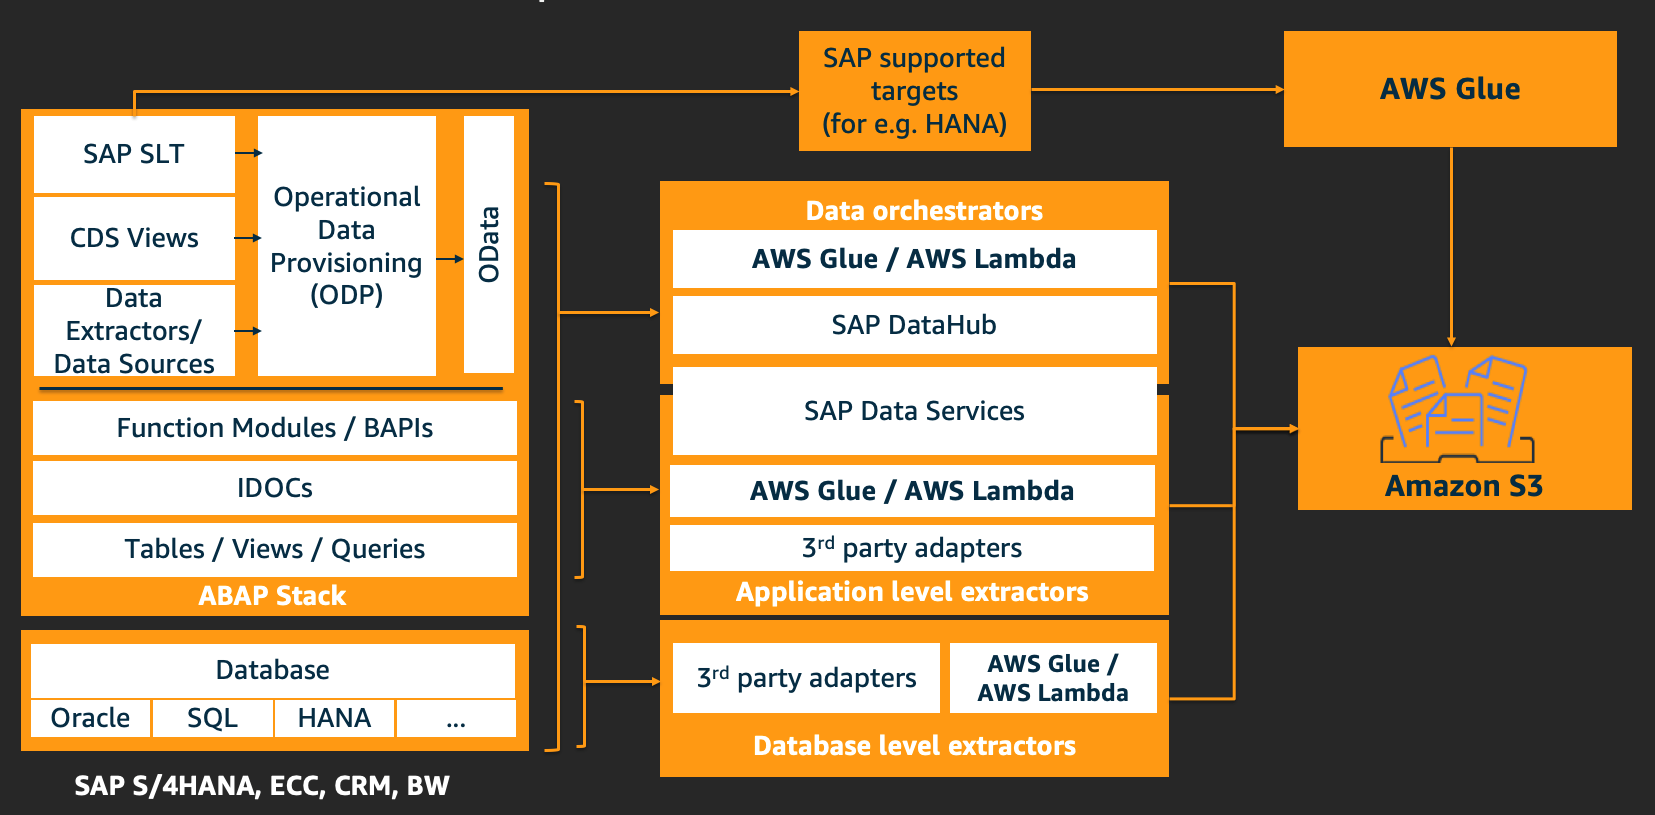 Shown here is a high-level architecture of the various integration patterns and extraction techniques for SAP applications. Extractions can be perormed at both database and application level using techniques identified here.